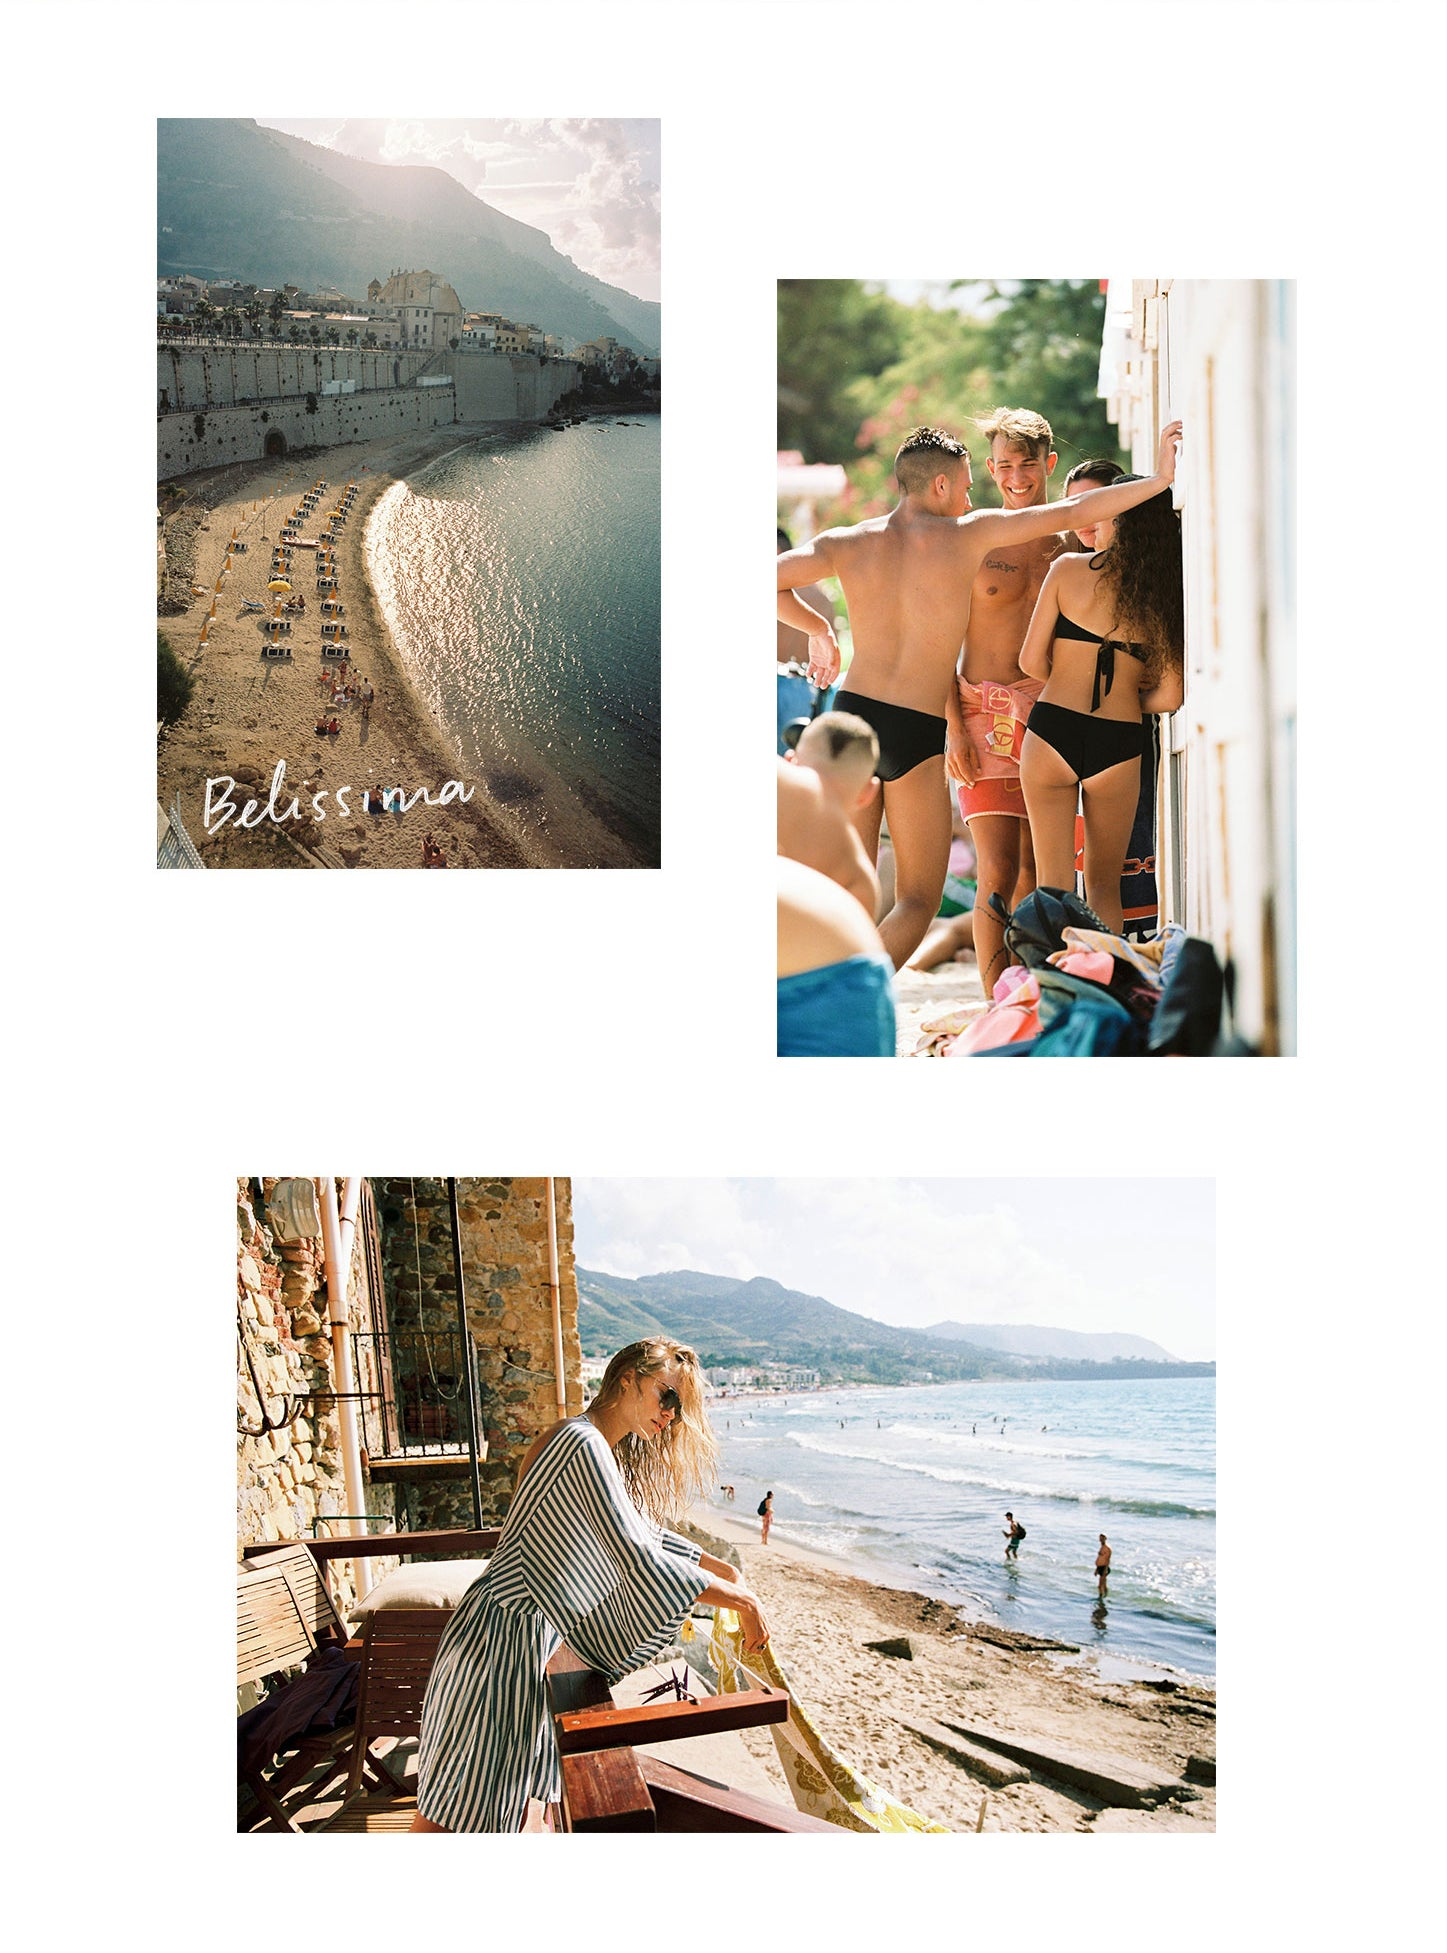 Cameron Hammond for Auguste, Sicily